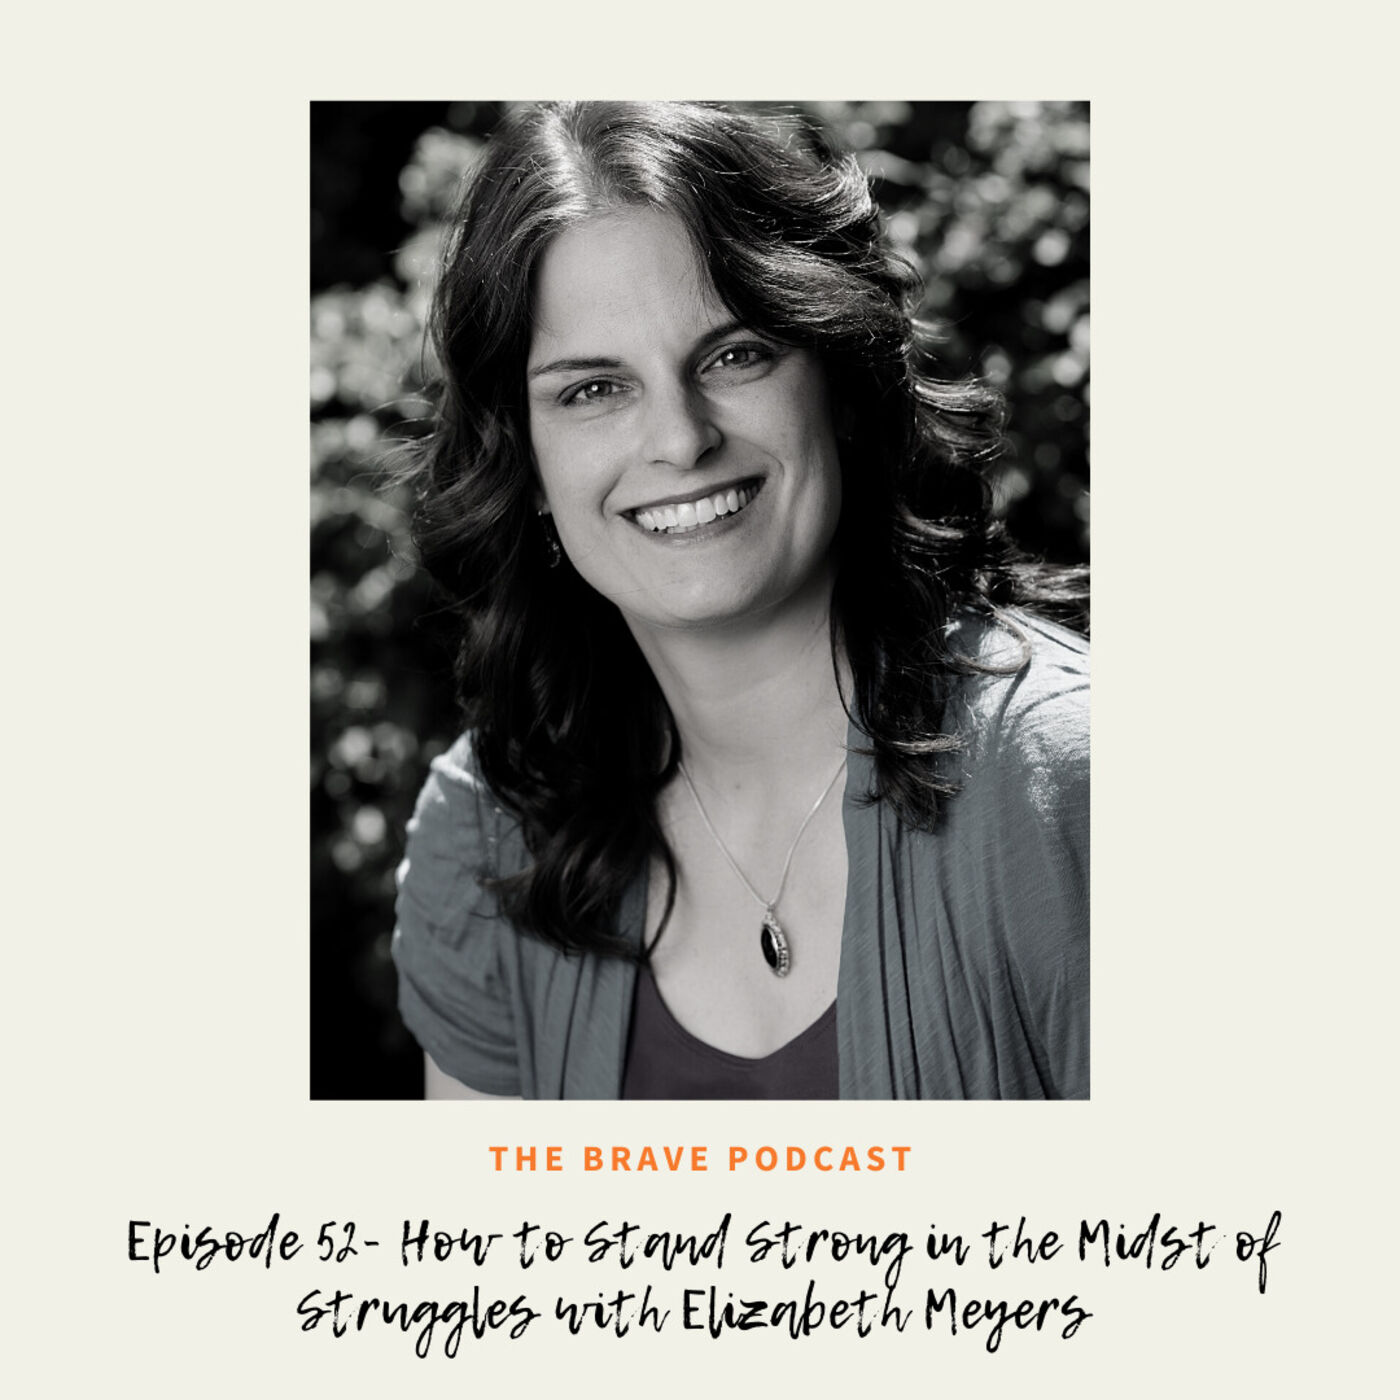 How to Stand Strong in the Midst of Struggles with Elizabeth Meyers